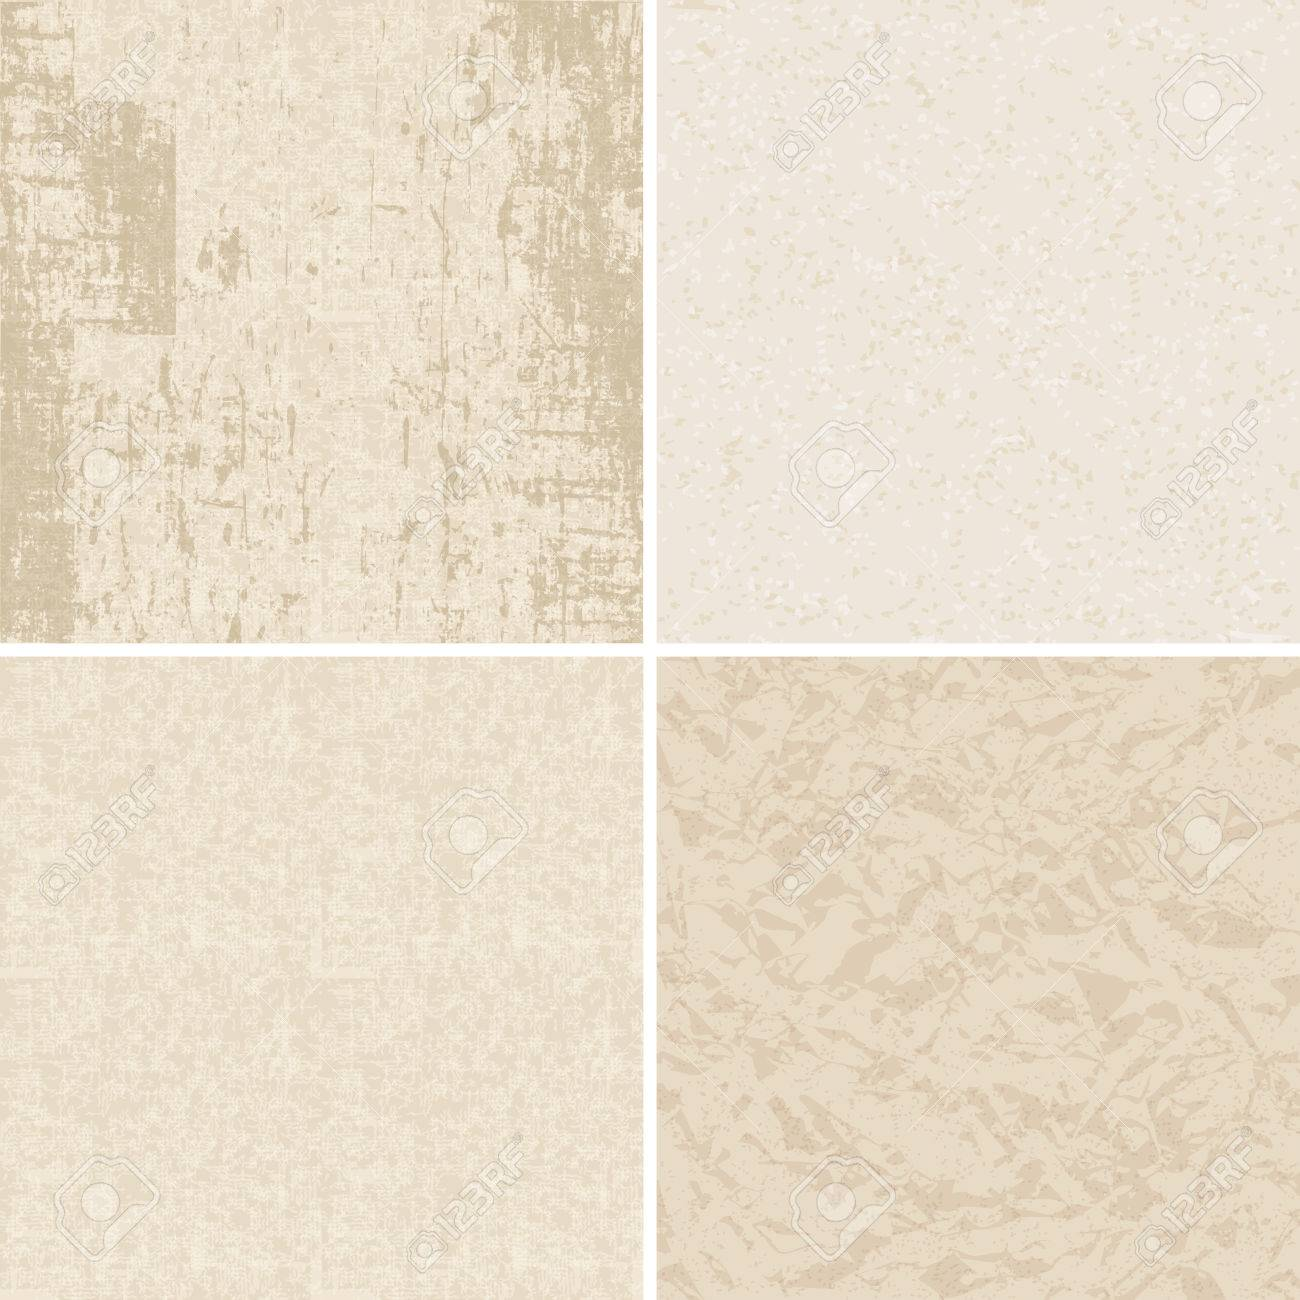 set of old textured paper backgrounds royalty free cliparts vectors